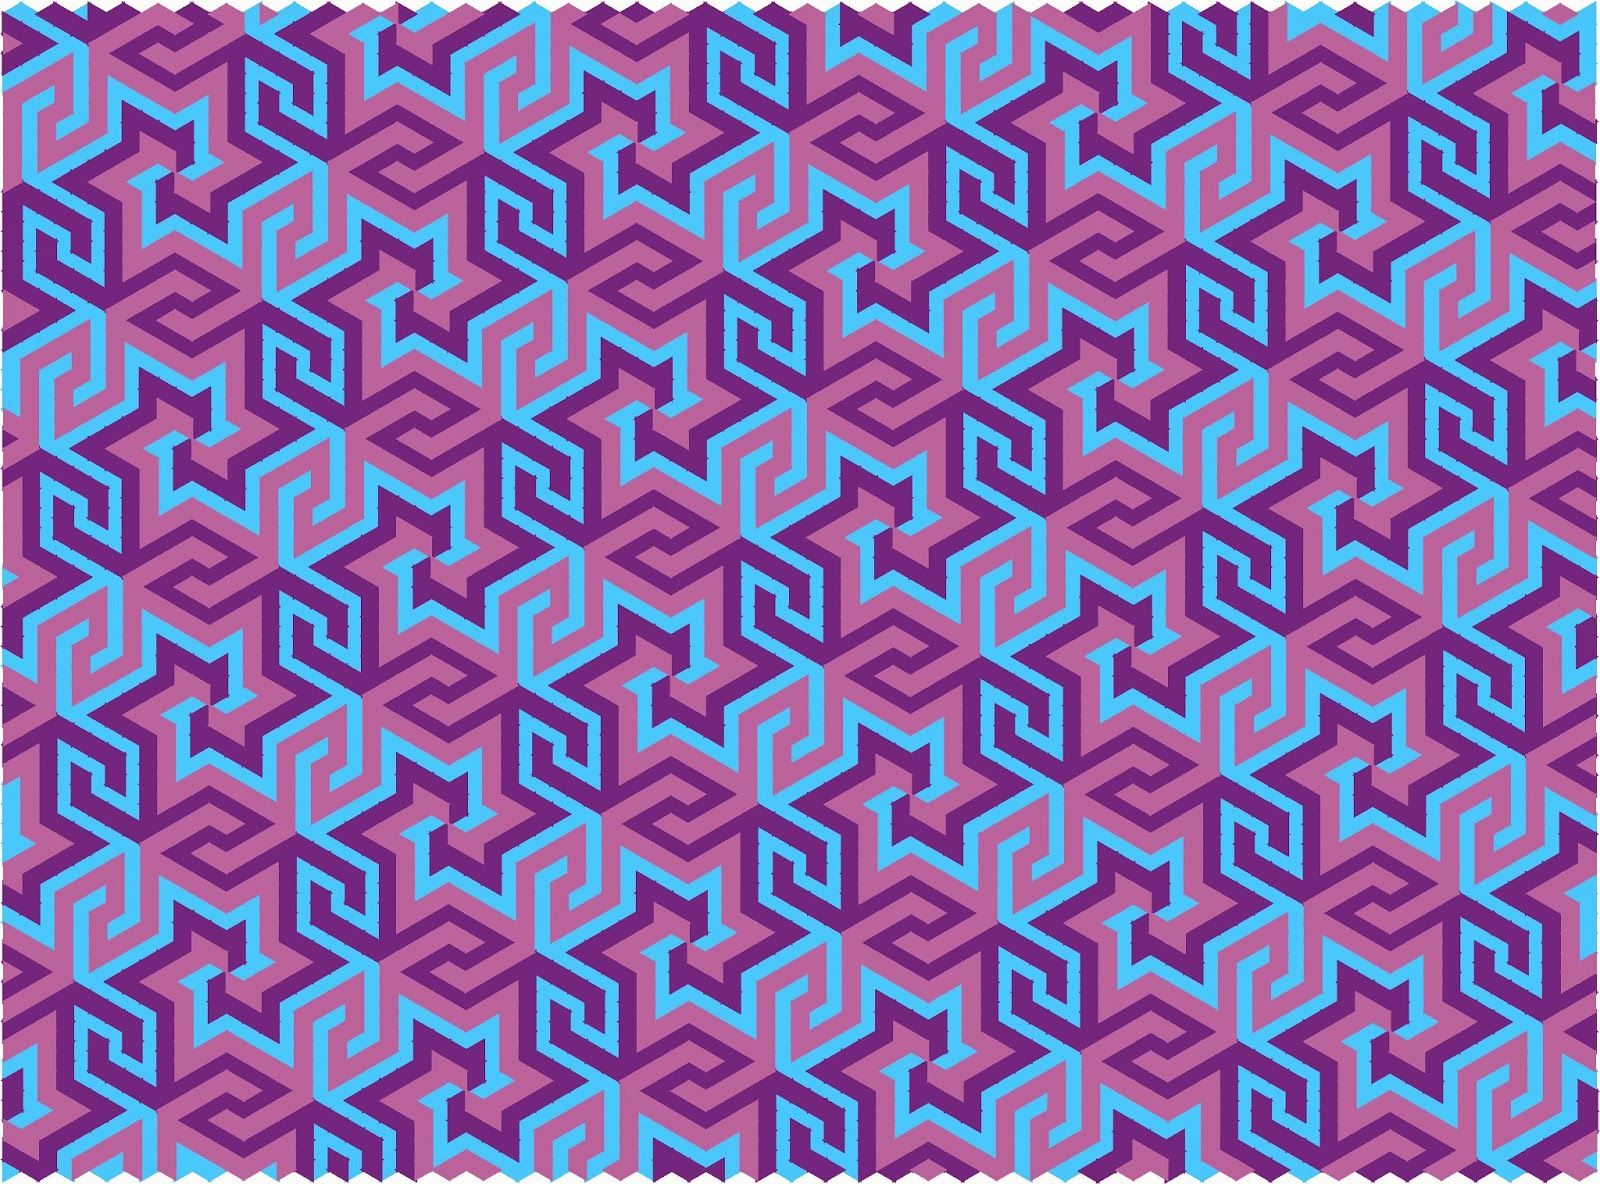 Hard Tessellation Google Search Tesselations Pinterest Ideas Origami Dog Diagram Group Picture Image By Tag Keywordpictures